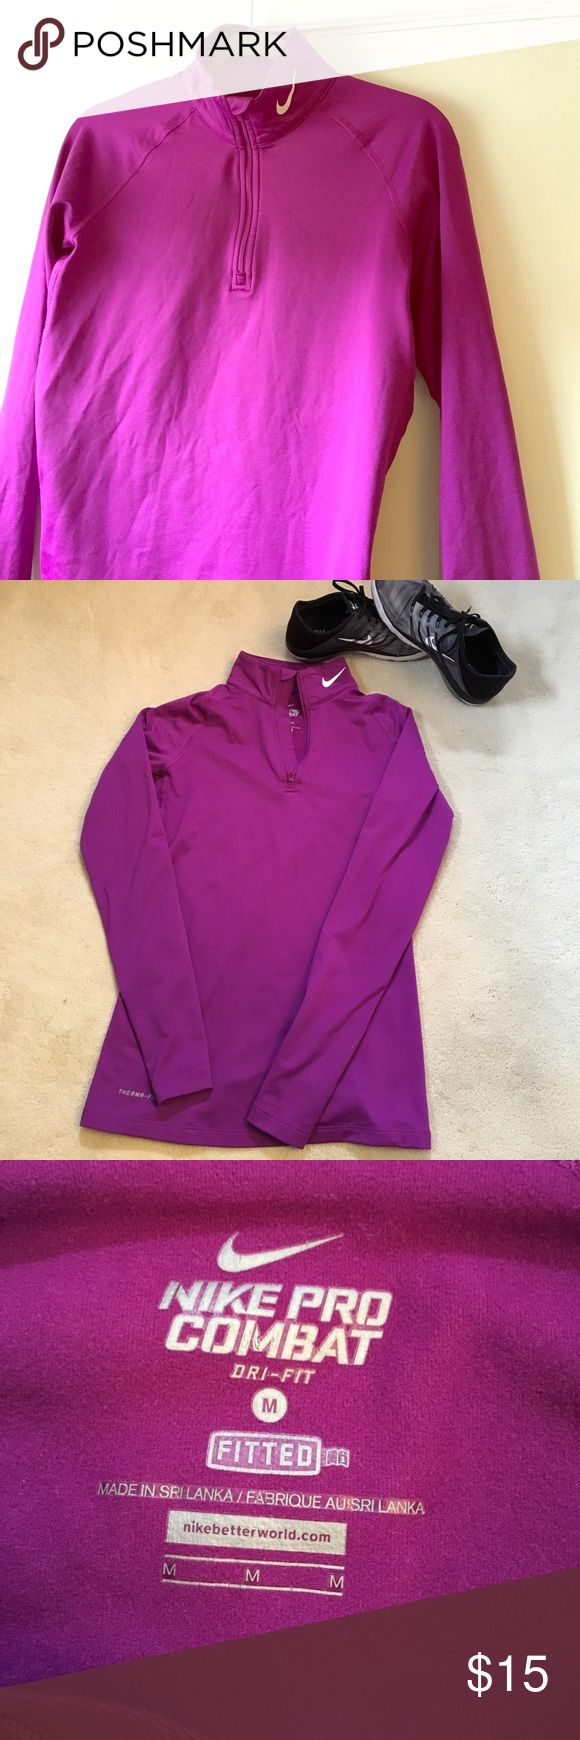 NIKE Pro Combat Fitted half-zip Bright purple Fitted DriFit Half Zip. It has light fleece inside to keep you warm on your run and thumbholes. Tapered a bit in the back to fit nicely. Good condition and ready to outfit a real runner or keep you cozy running errands. Polyester and Spandex for a little stretch. Size MEDIUM Nike Tops Sweatshirts & Hoodies